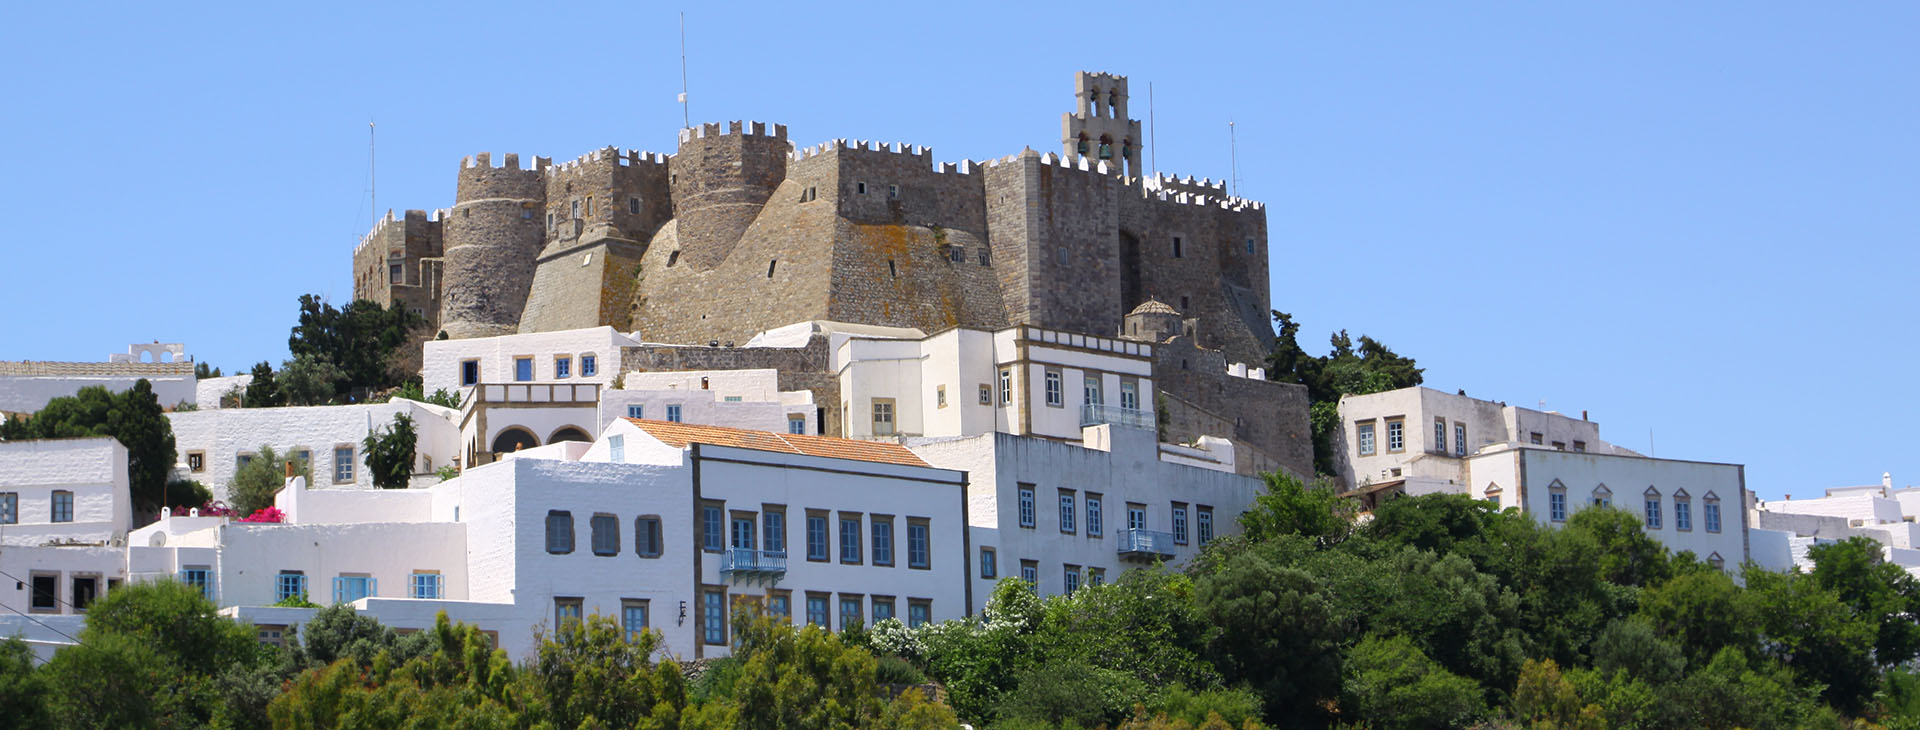 Monastery of Saint John the Theologian, Patmos island